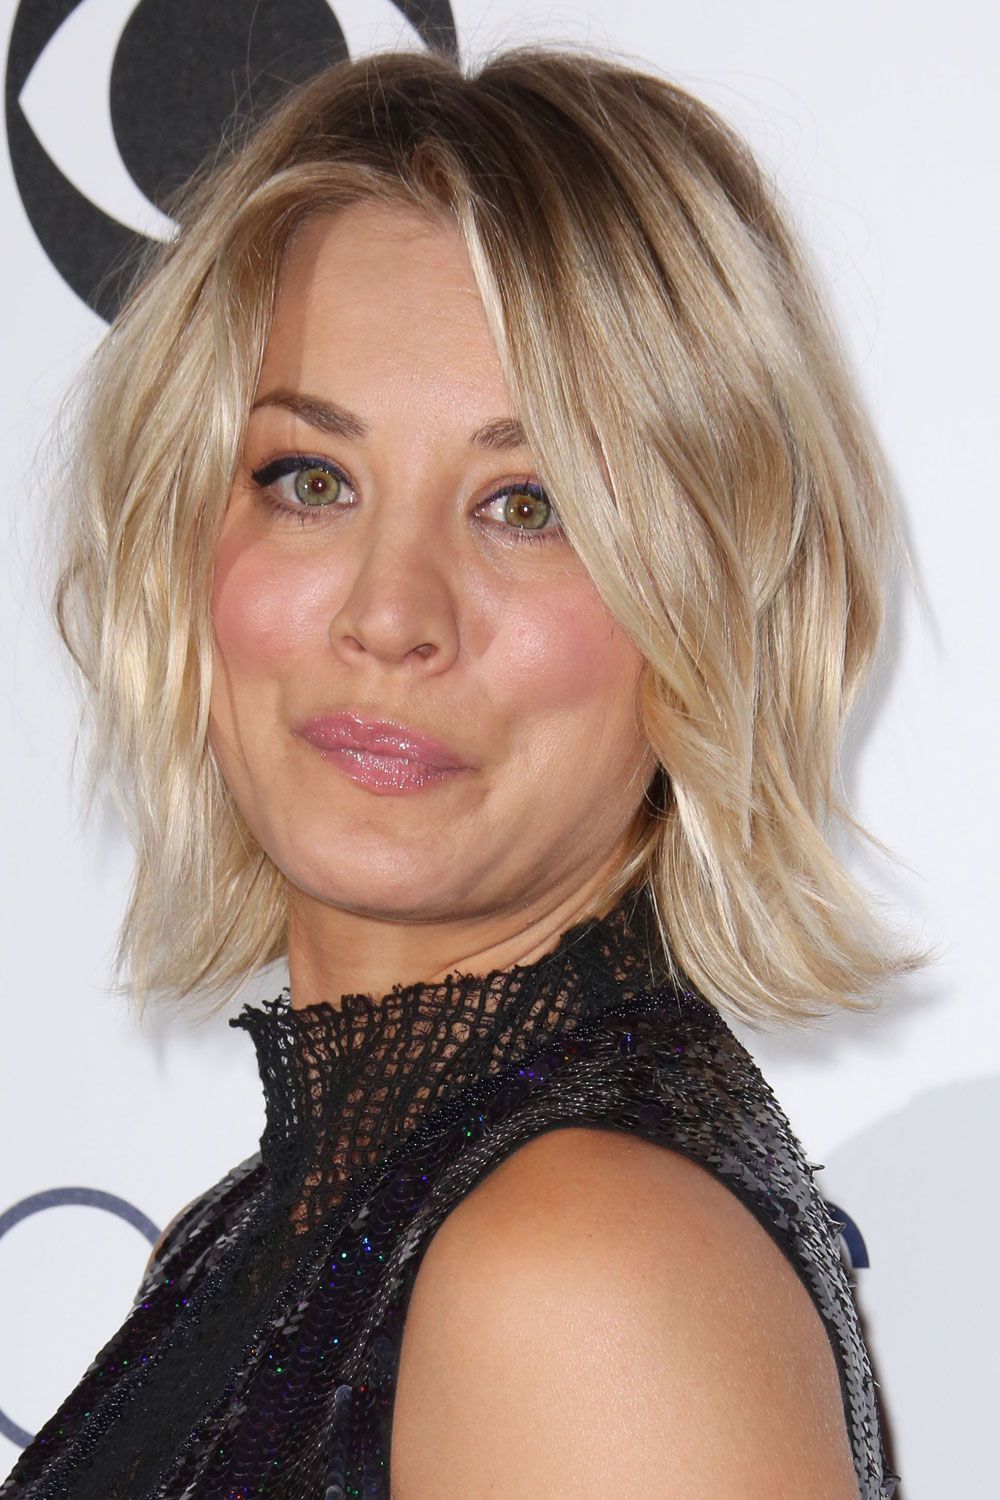 Bob Hairstyles To Give You All The Short Hair Inspo My Style